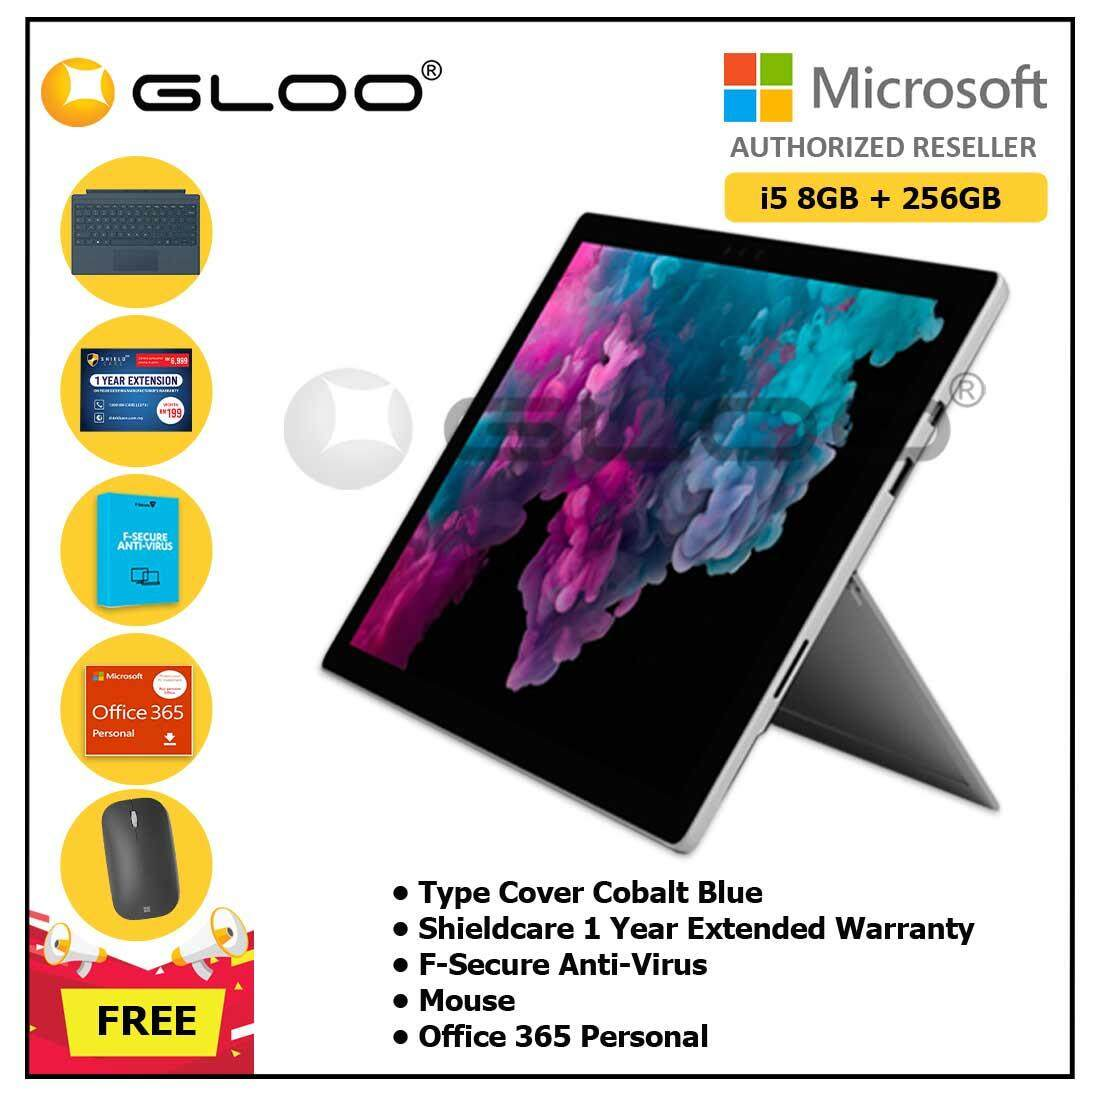 Microsoft Surface Pro 6 Core i5/8GB RAM - 256GB + Type Cover Cobalt Blue + Office 365 Personal (ESD) + Shieldcare 1 Year Extended Warranty + F-Secure EndPoint Protection + Mouse